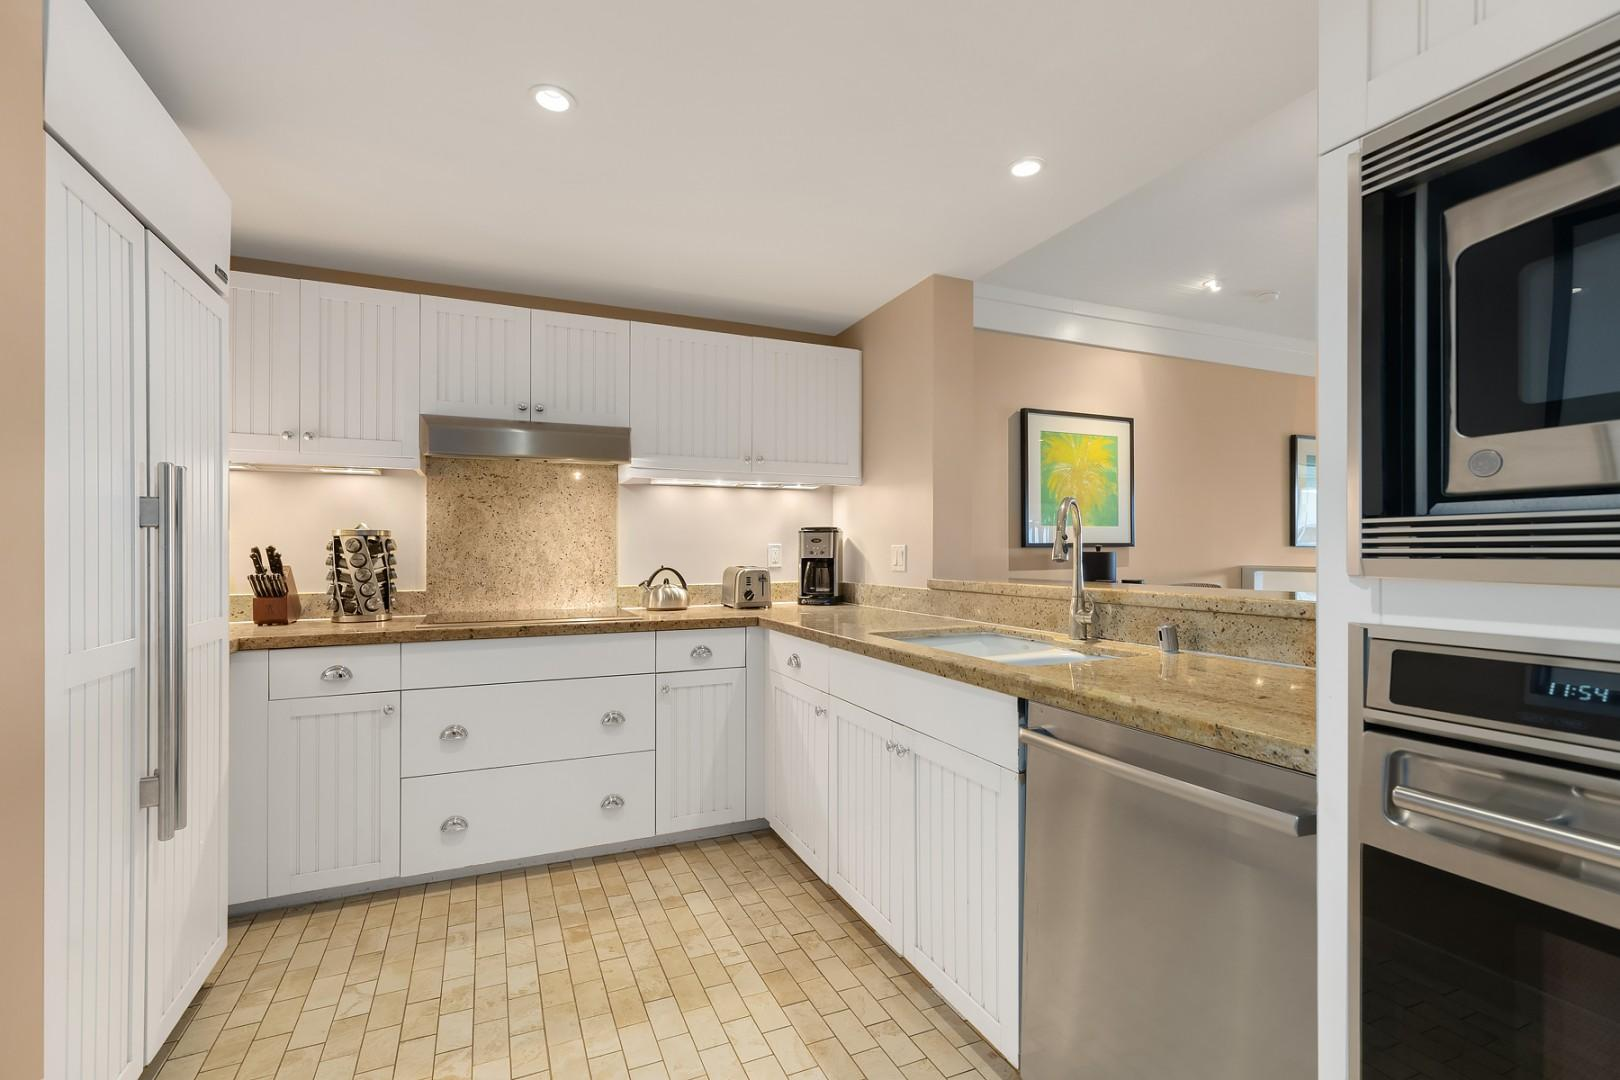 Large kitchen with upgraded appliances